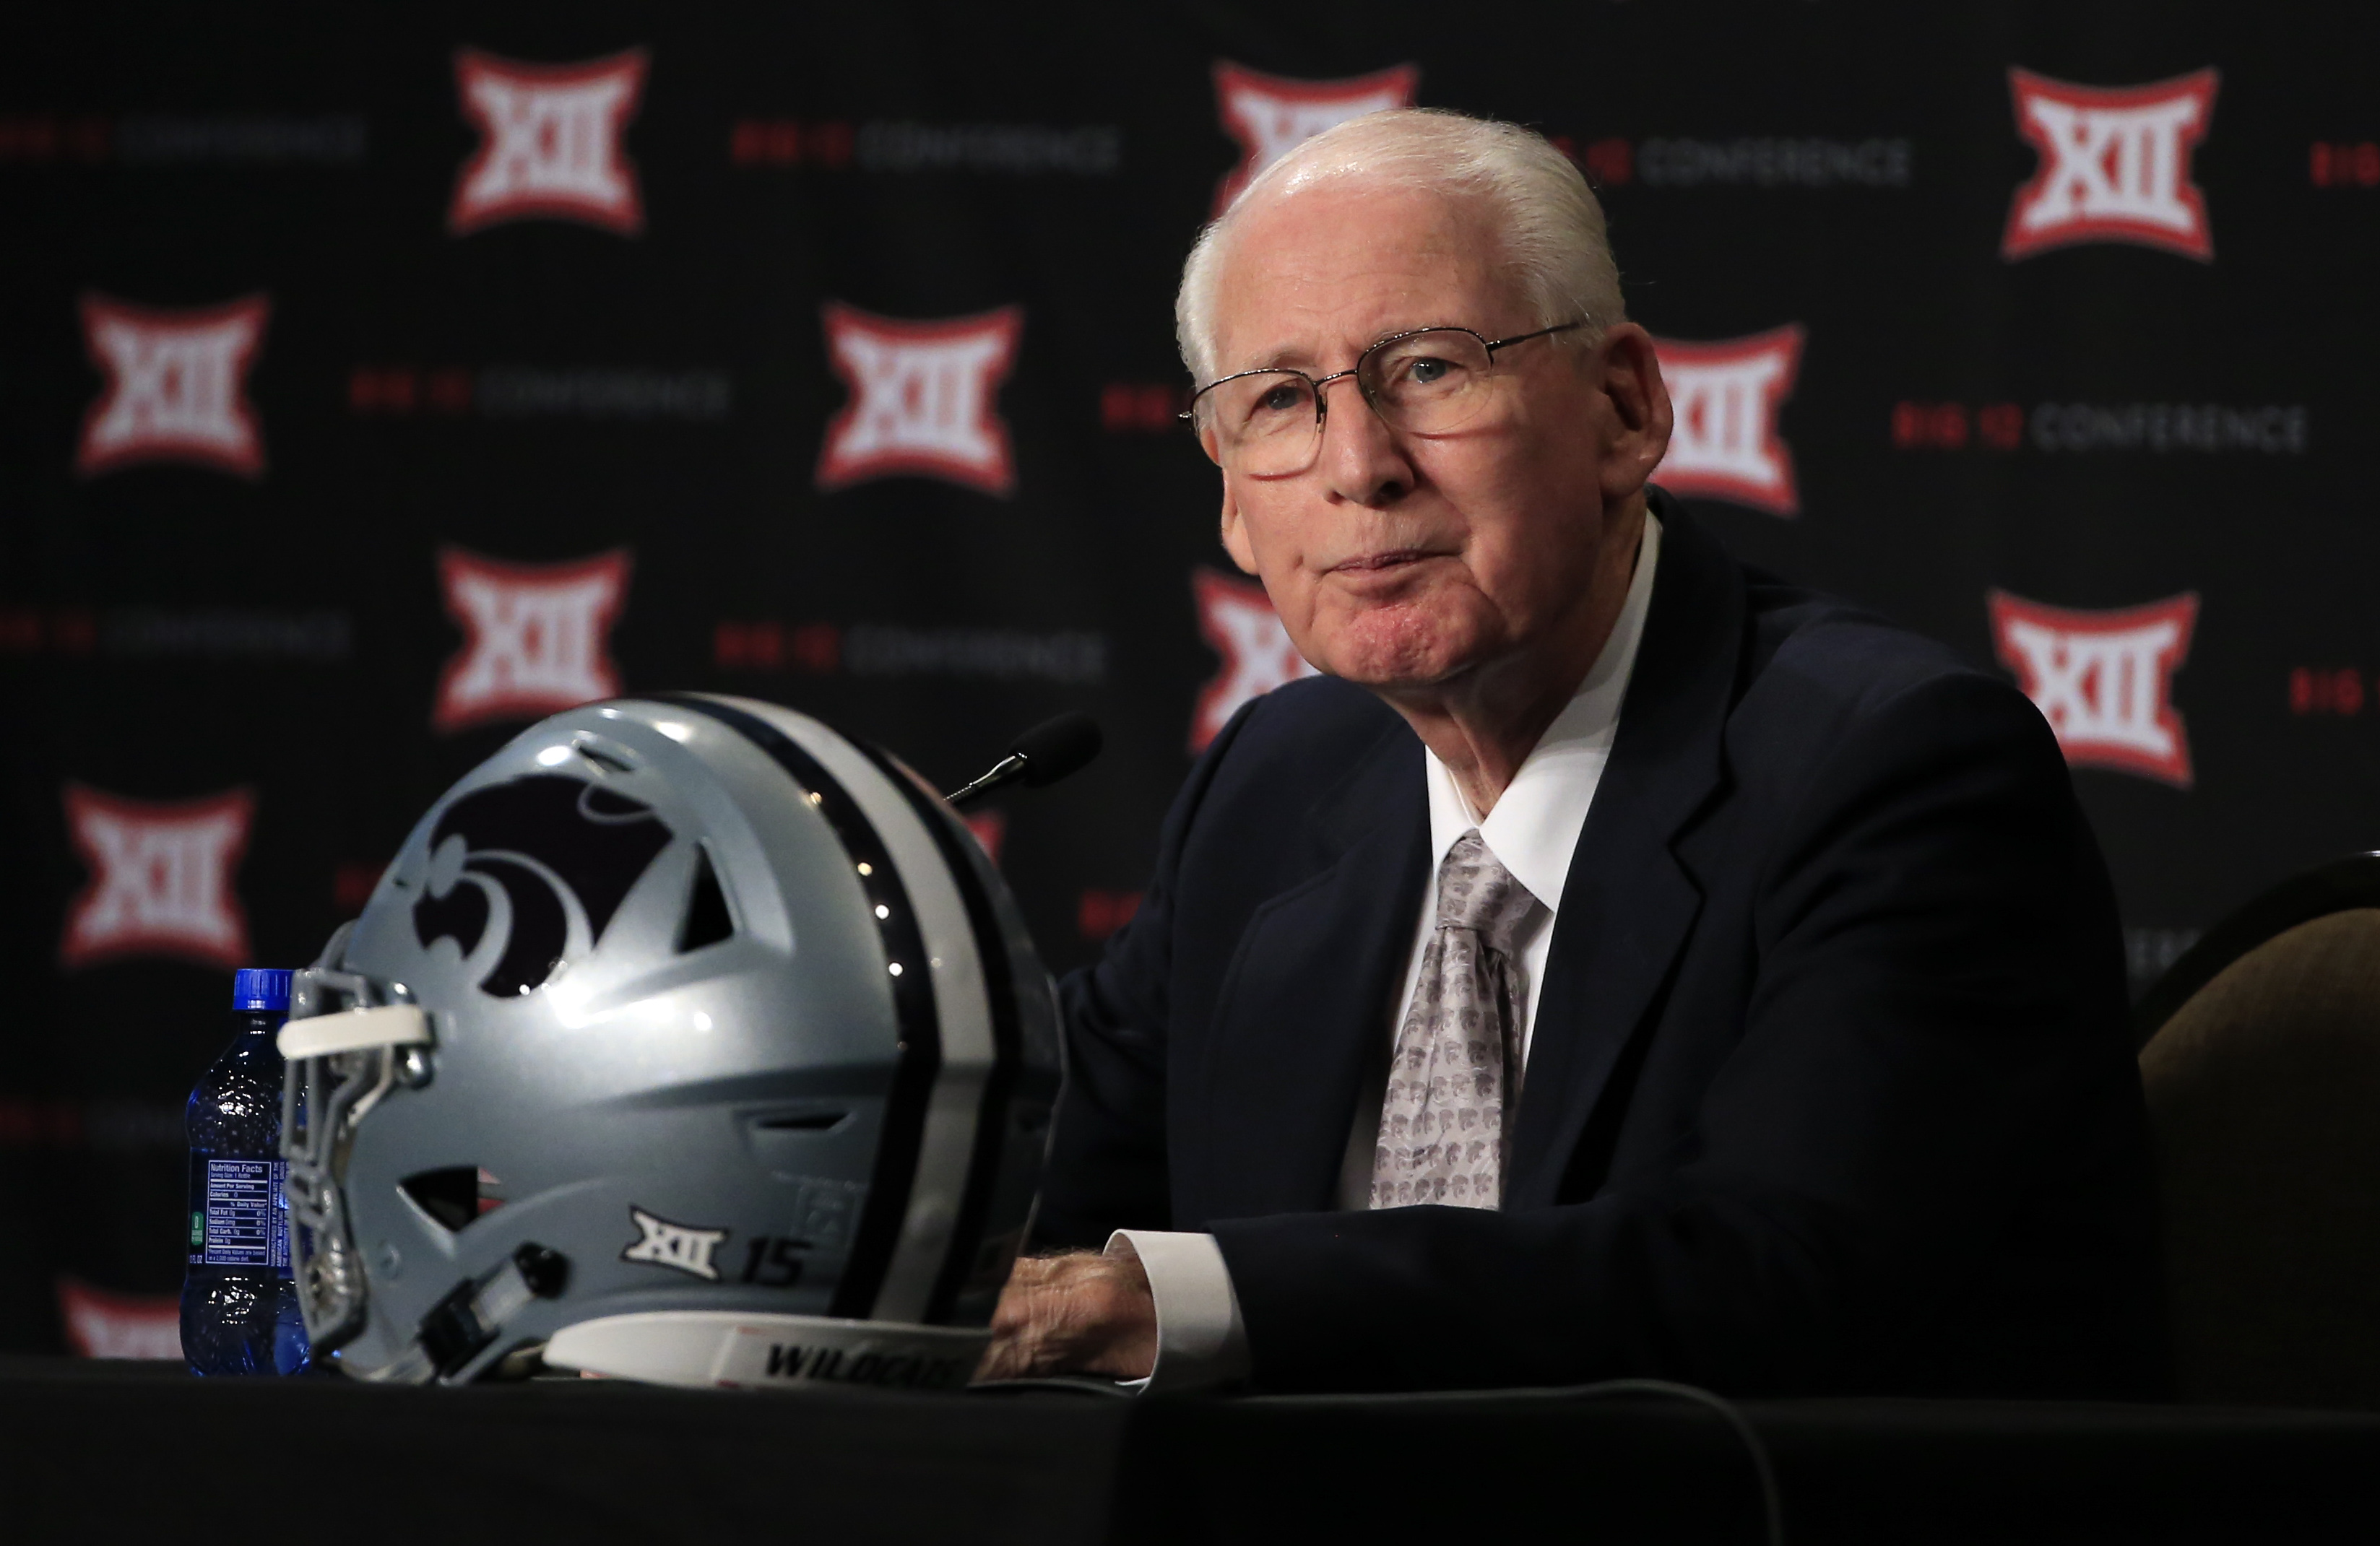 Straight answers from Bill Snyder at Big 12 Media Days? AS IF!